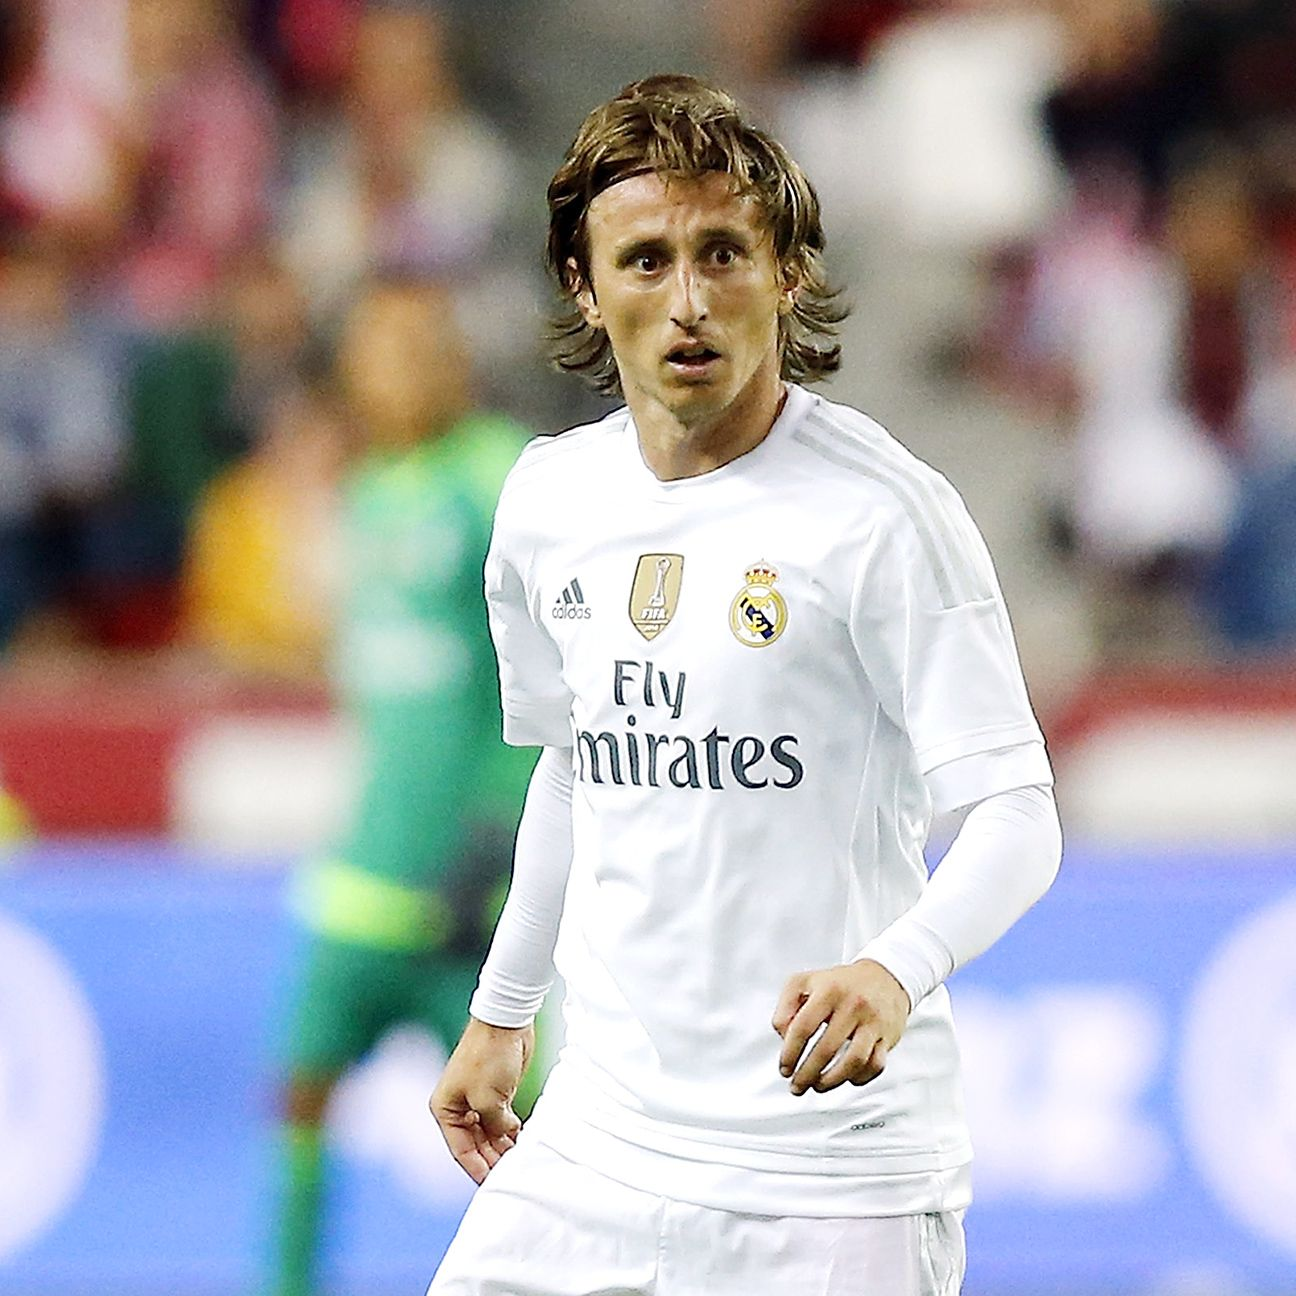 Luka Modric showed a superb work rate at both ends of the pitch in Sunday's 0-0 draw at Sporting.